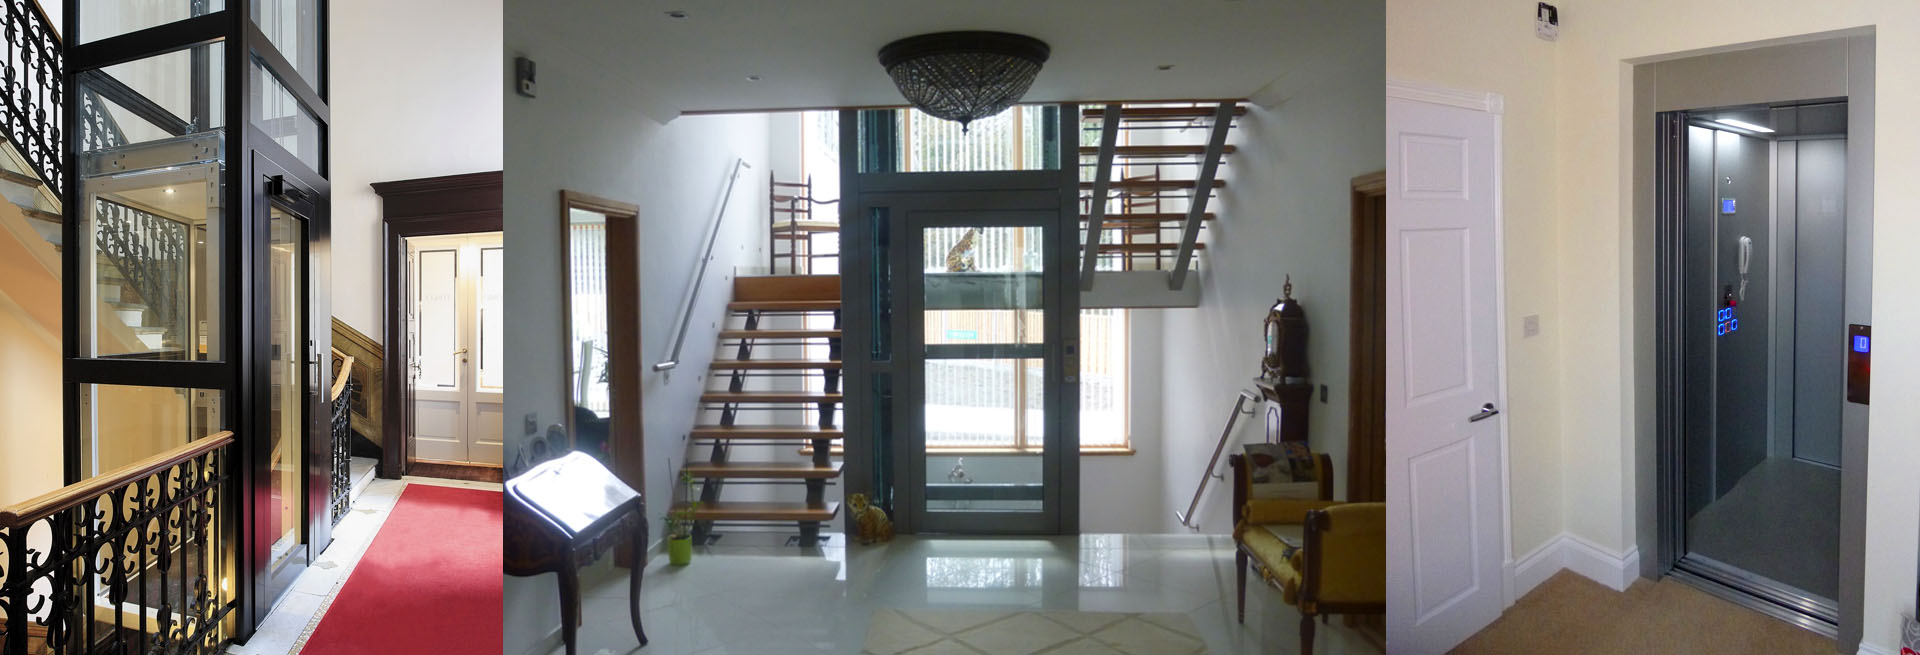 Slideshow Image showing three Lifts for Houses